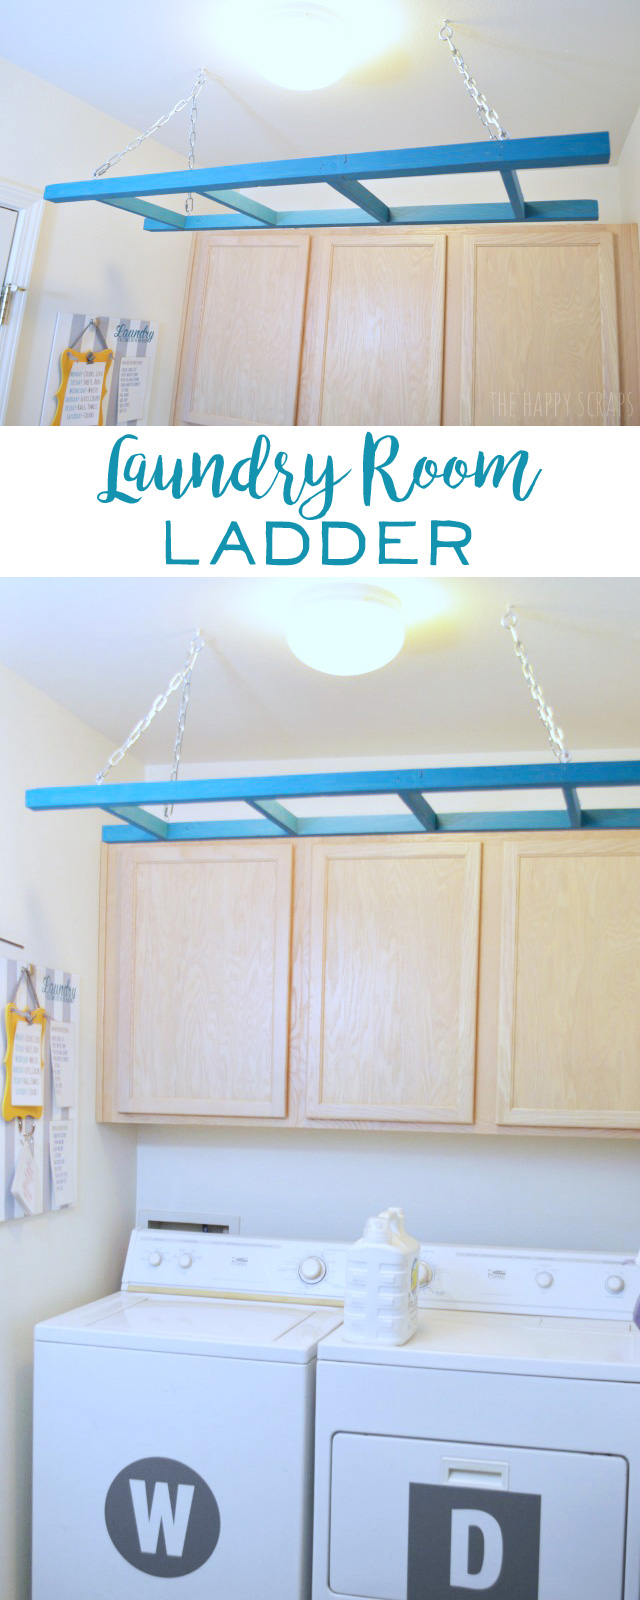 Laundry Room Ladder - The Happy Scraps